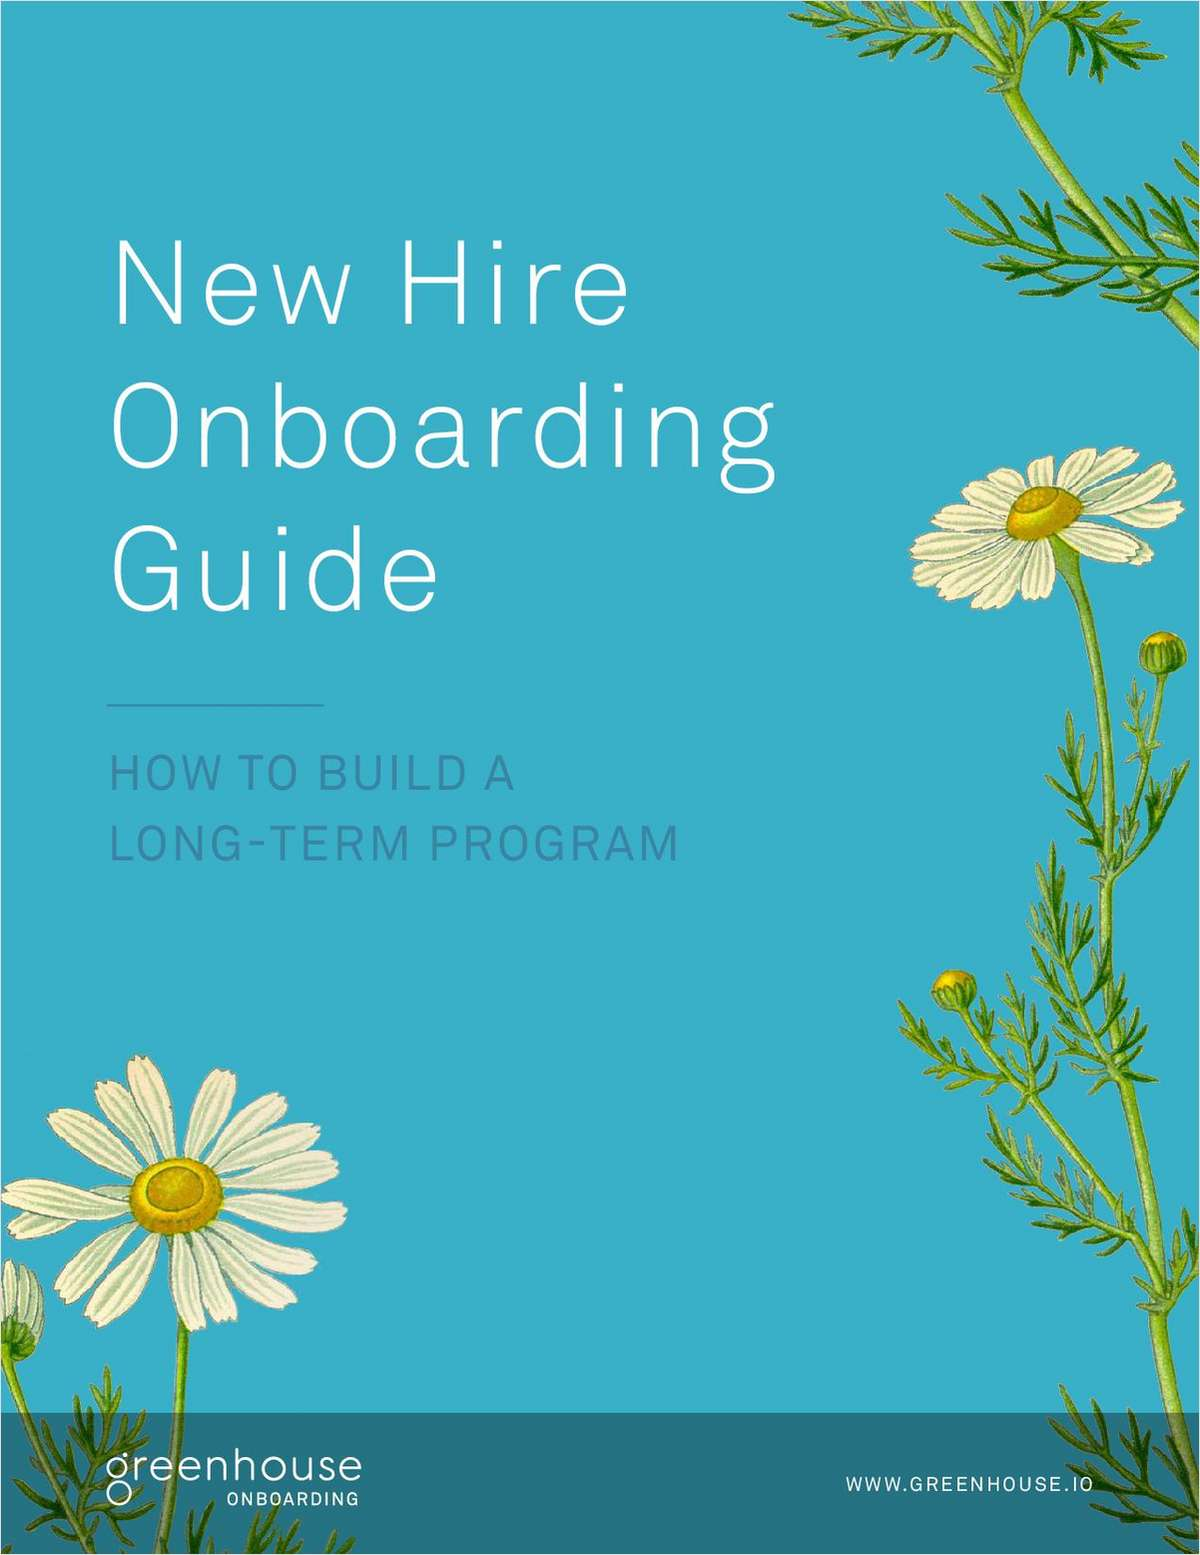 The New Hire Onboarding Guide: How to Build a Long-Term Program